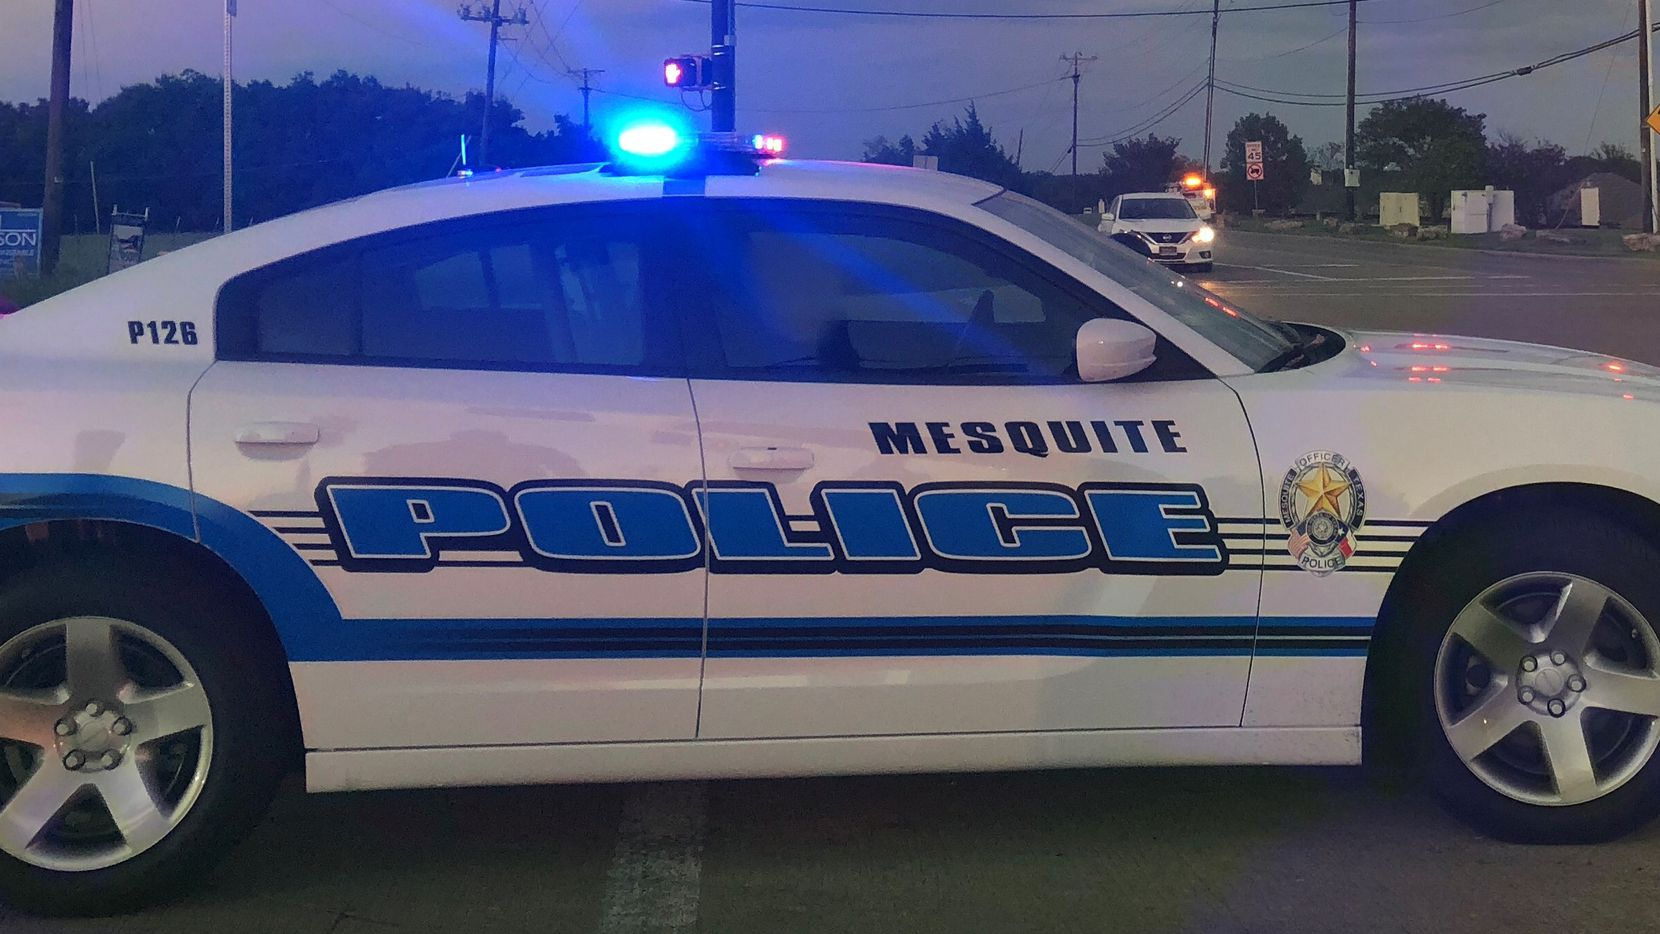 Around 4:30 p.m. Wednesday, Mesquite police responded to a shooting call in the 4800 block of Shands Drive, near Shands Elementary School.